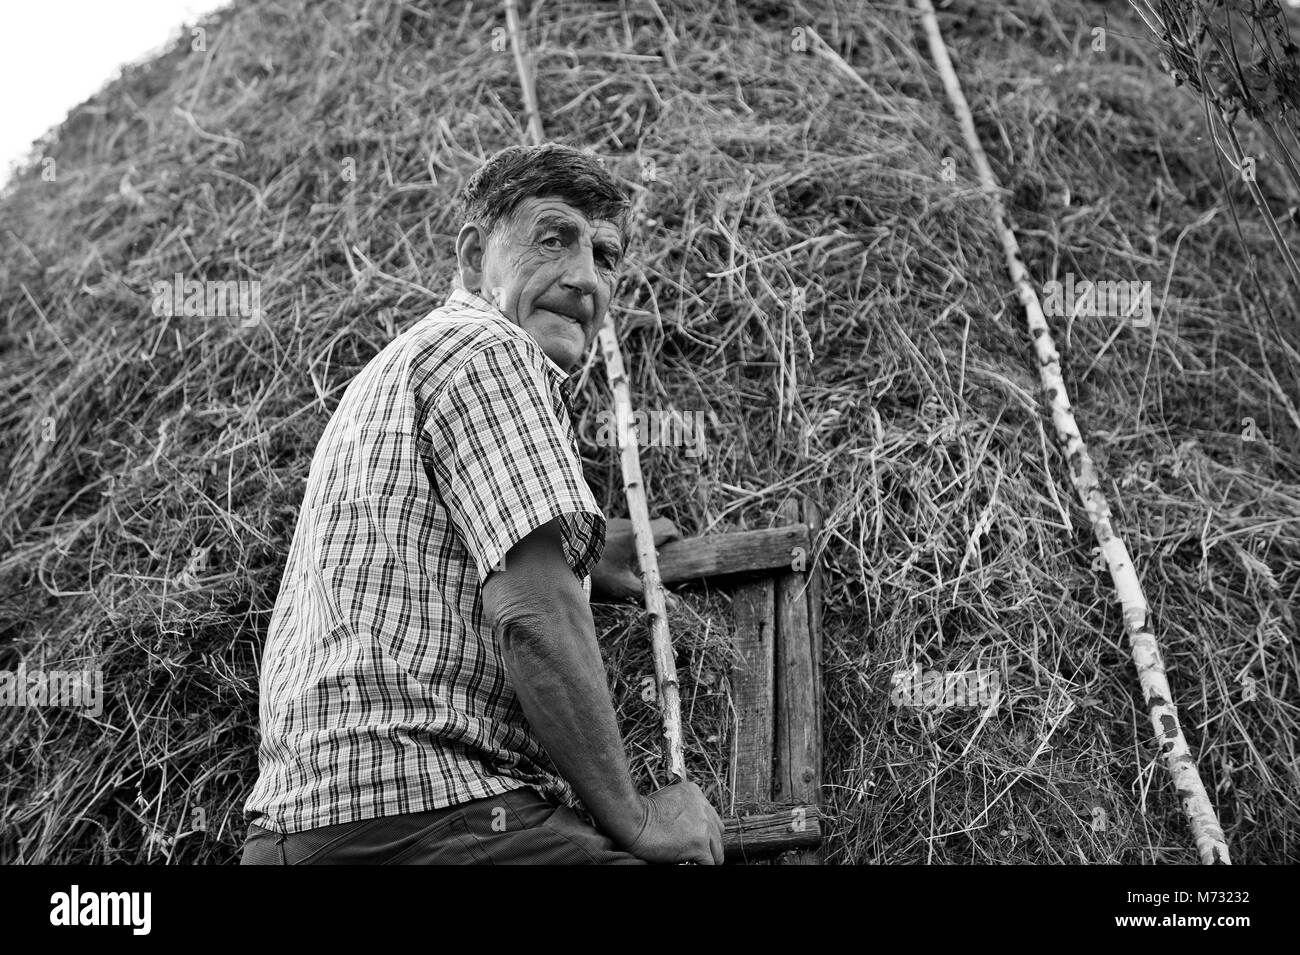 Black and white of farmer on ladder against haystack looking at the camera - Stock Image